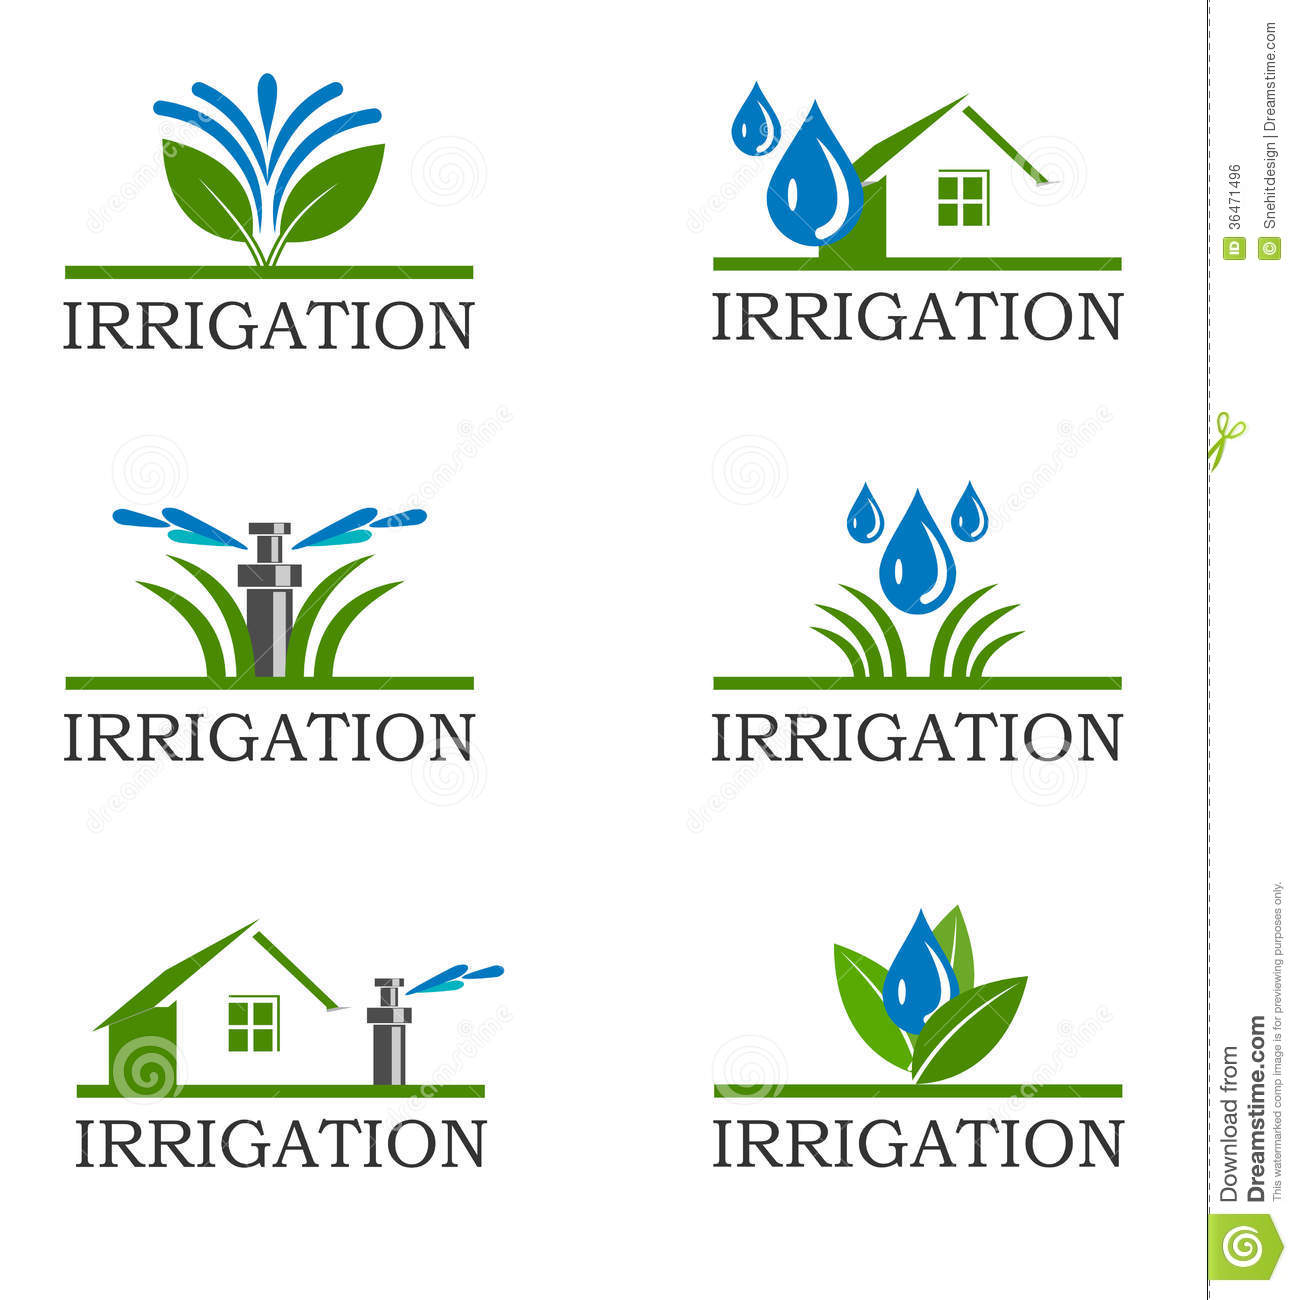 Similiar Lawn Sprinkler System Clip Art Keywords.